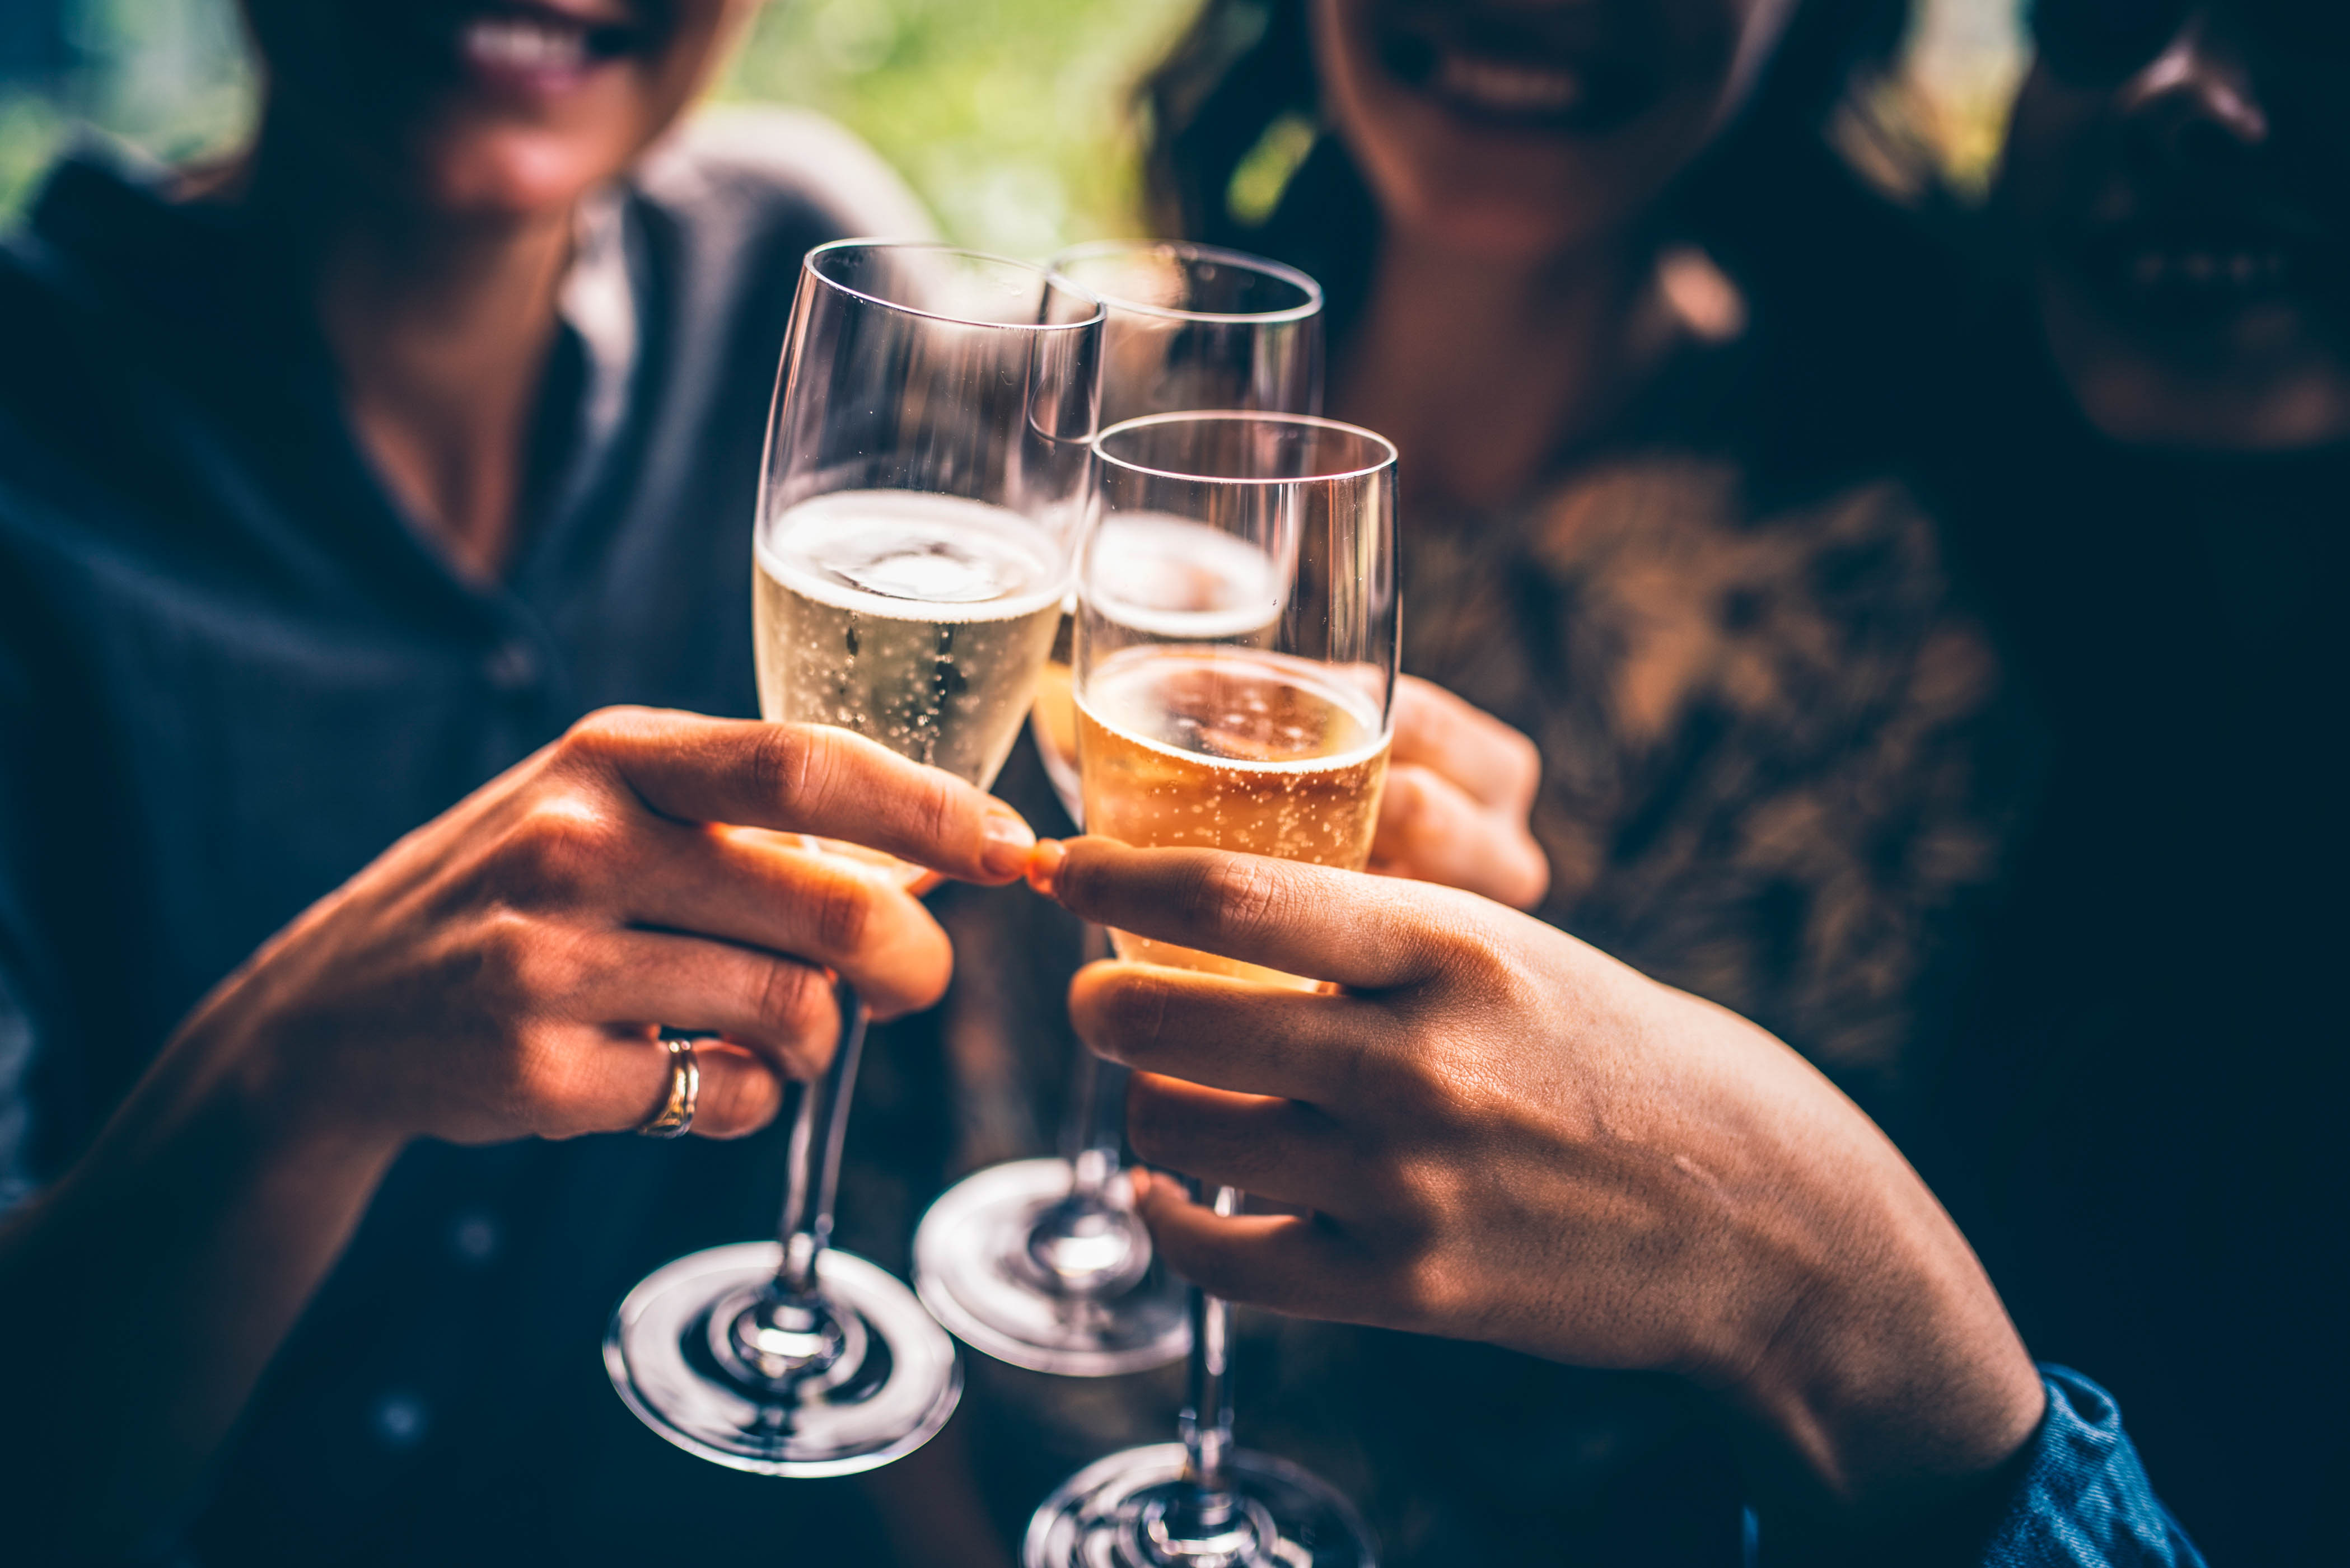 Three female friends celebrating with champagne. They are sitting in a bar and toasting with glasses of champagne.